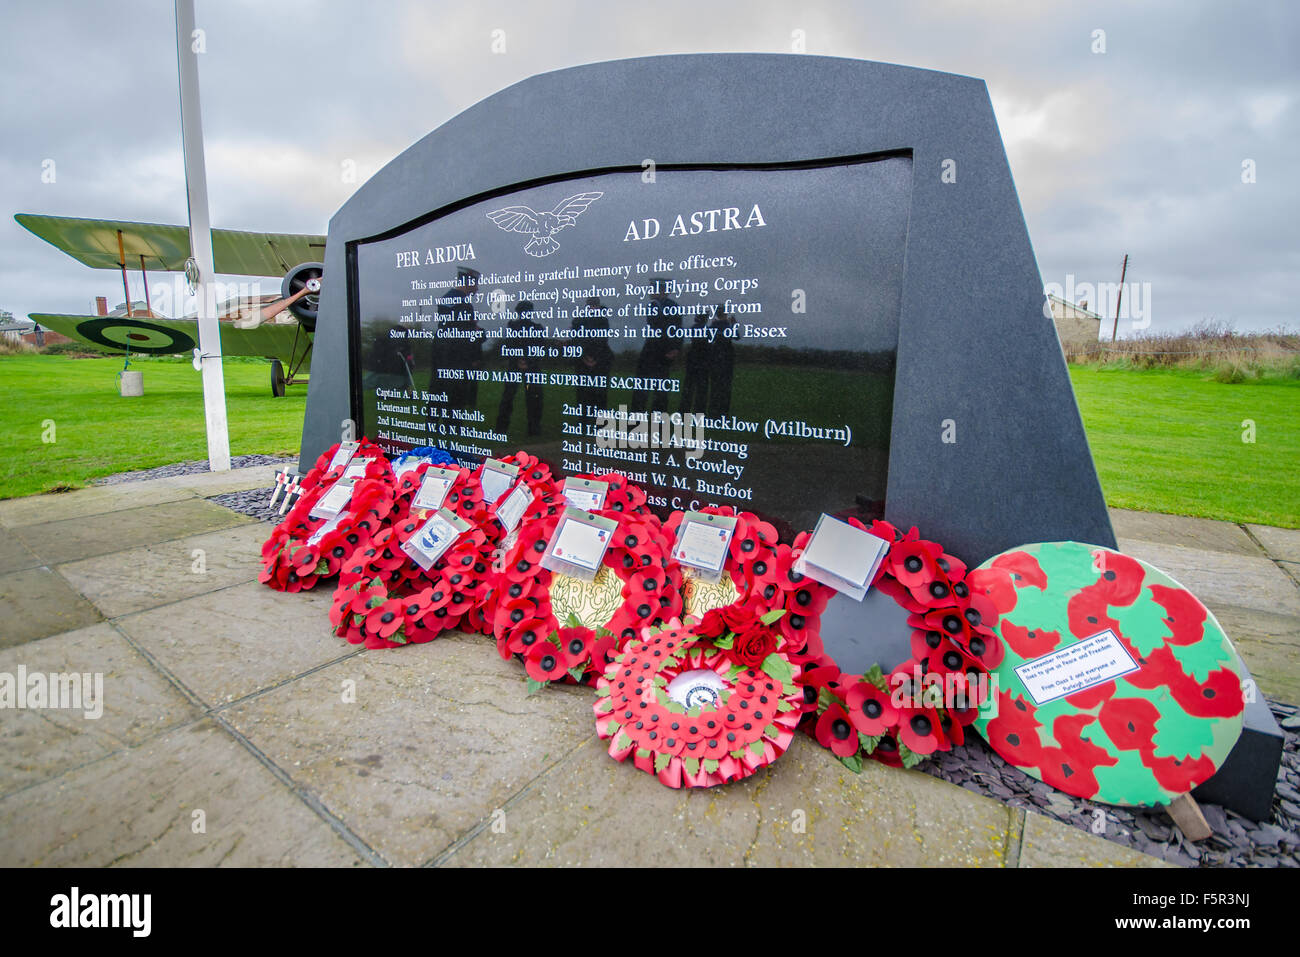 Remembrance Sunday service and wreath laying ceremony took place at Stow Maries Aerodrome, Essex - Stock Image